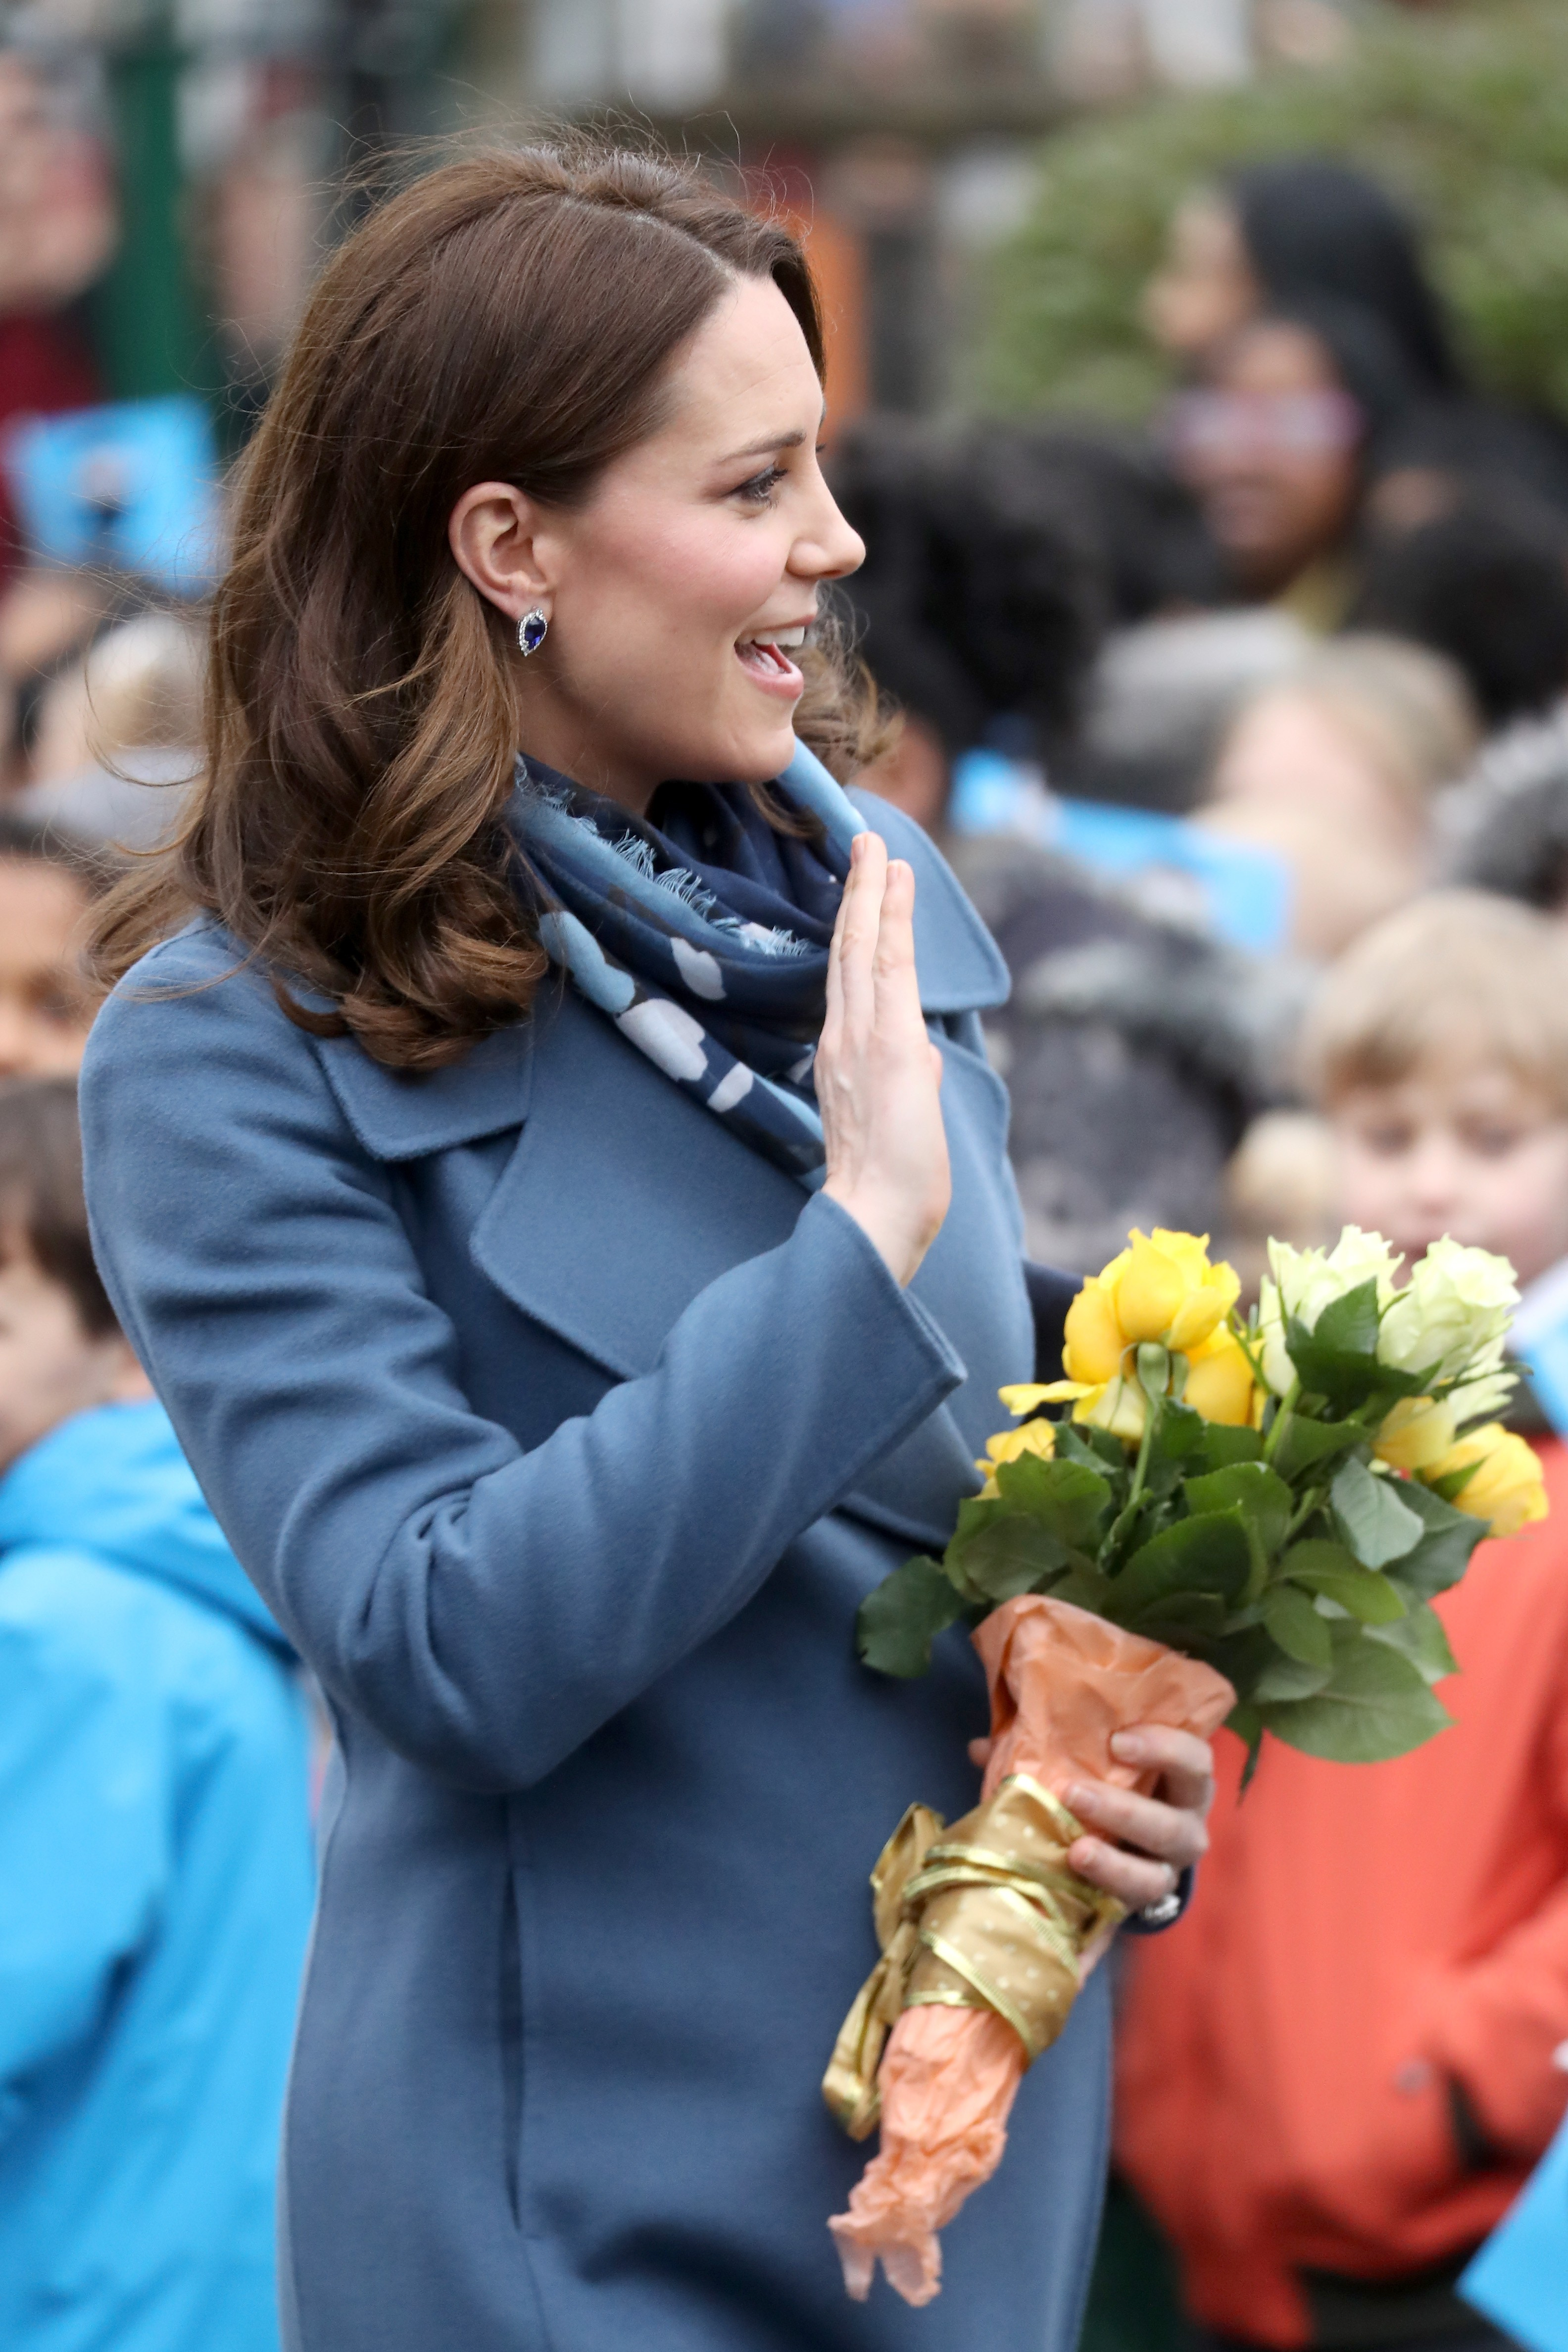 LONDON, ENGLAND - JANUARY 23:  Catherine, Duchess of Cambridge visits Roe Green Junior School on January 23, 2018 in London, England to launch a programme that supports children's mental health at school.  (Photo by Chris Jackson/Getty Images) (Foto: Getty Images)